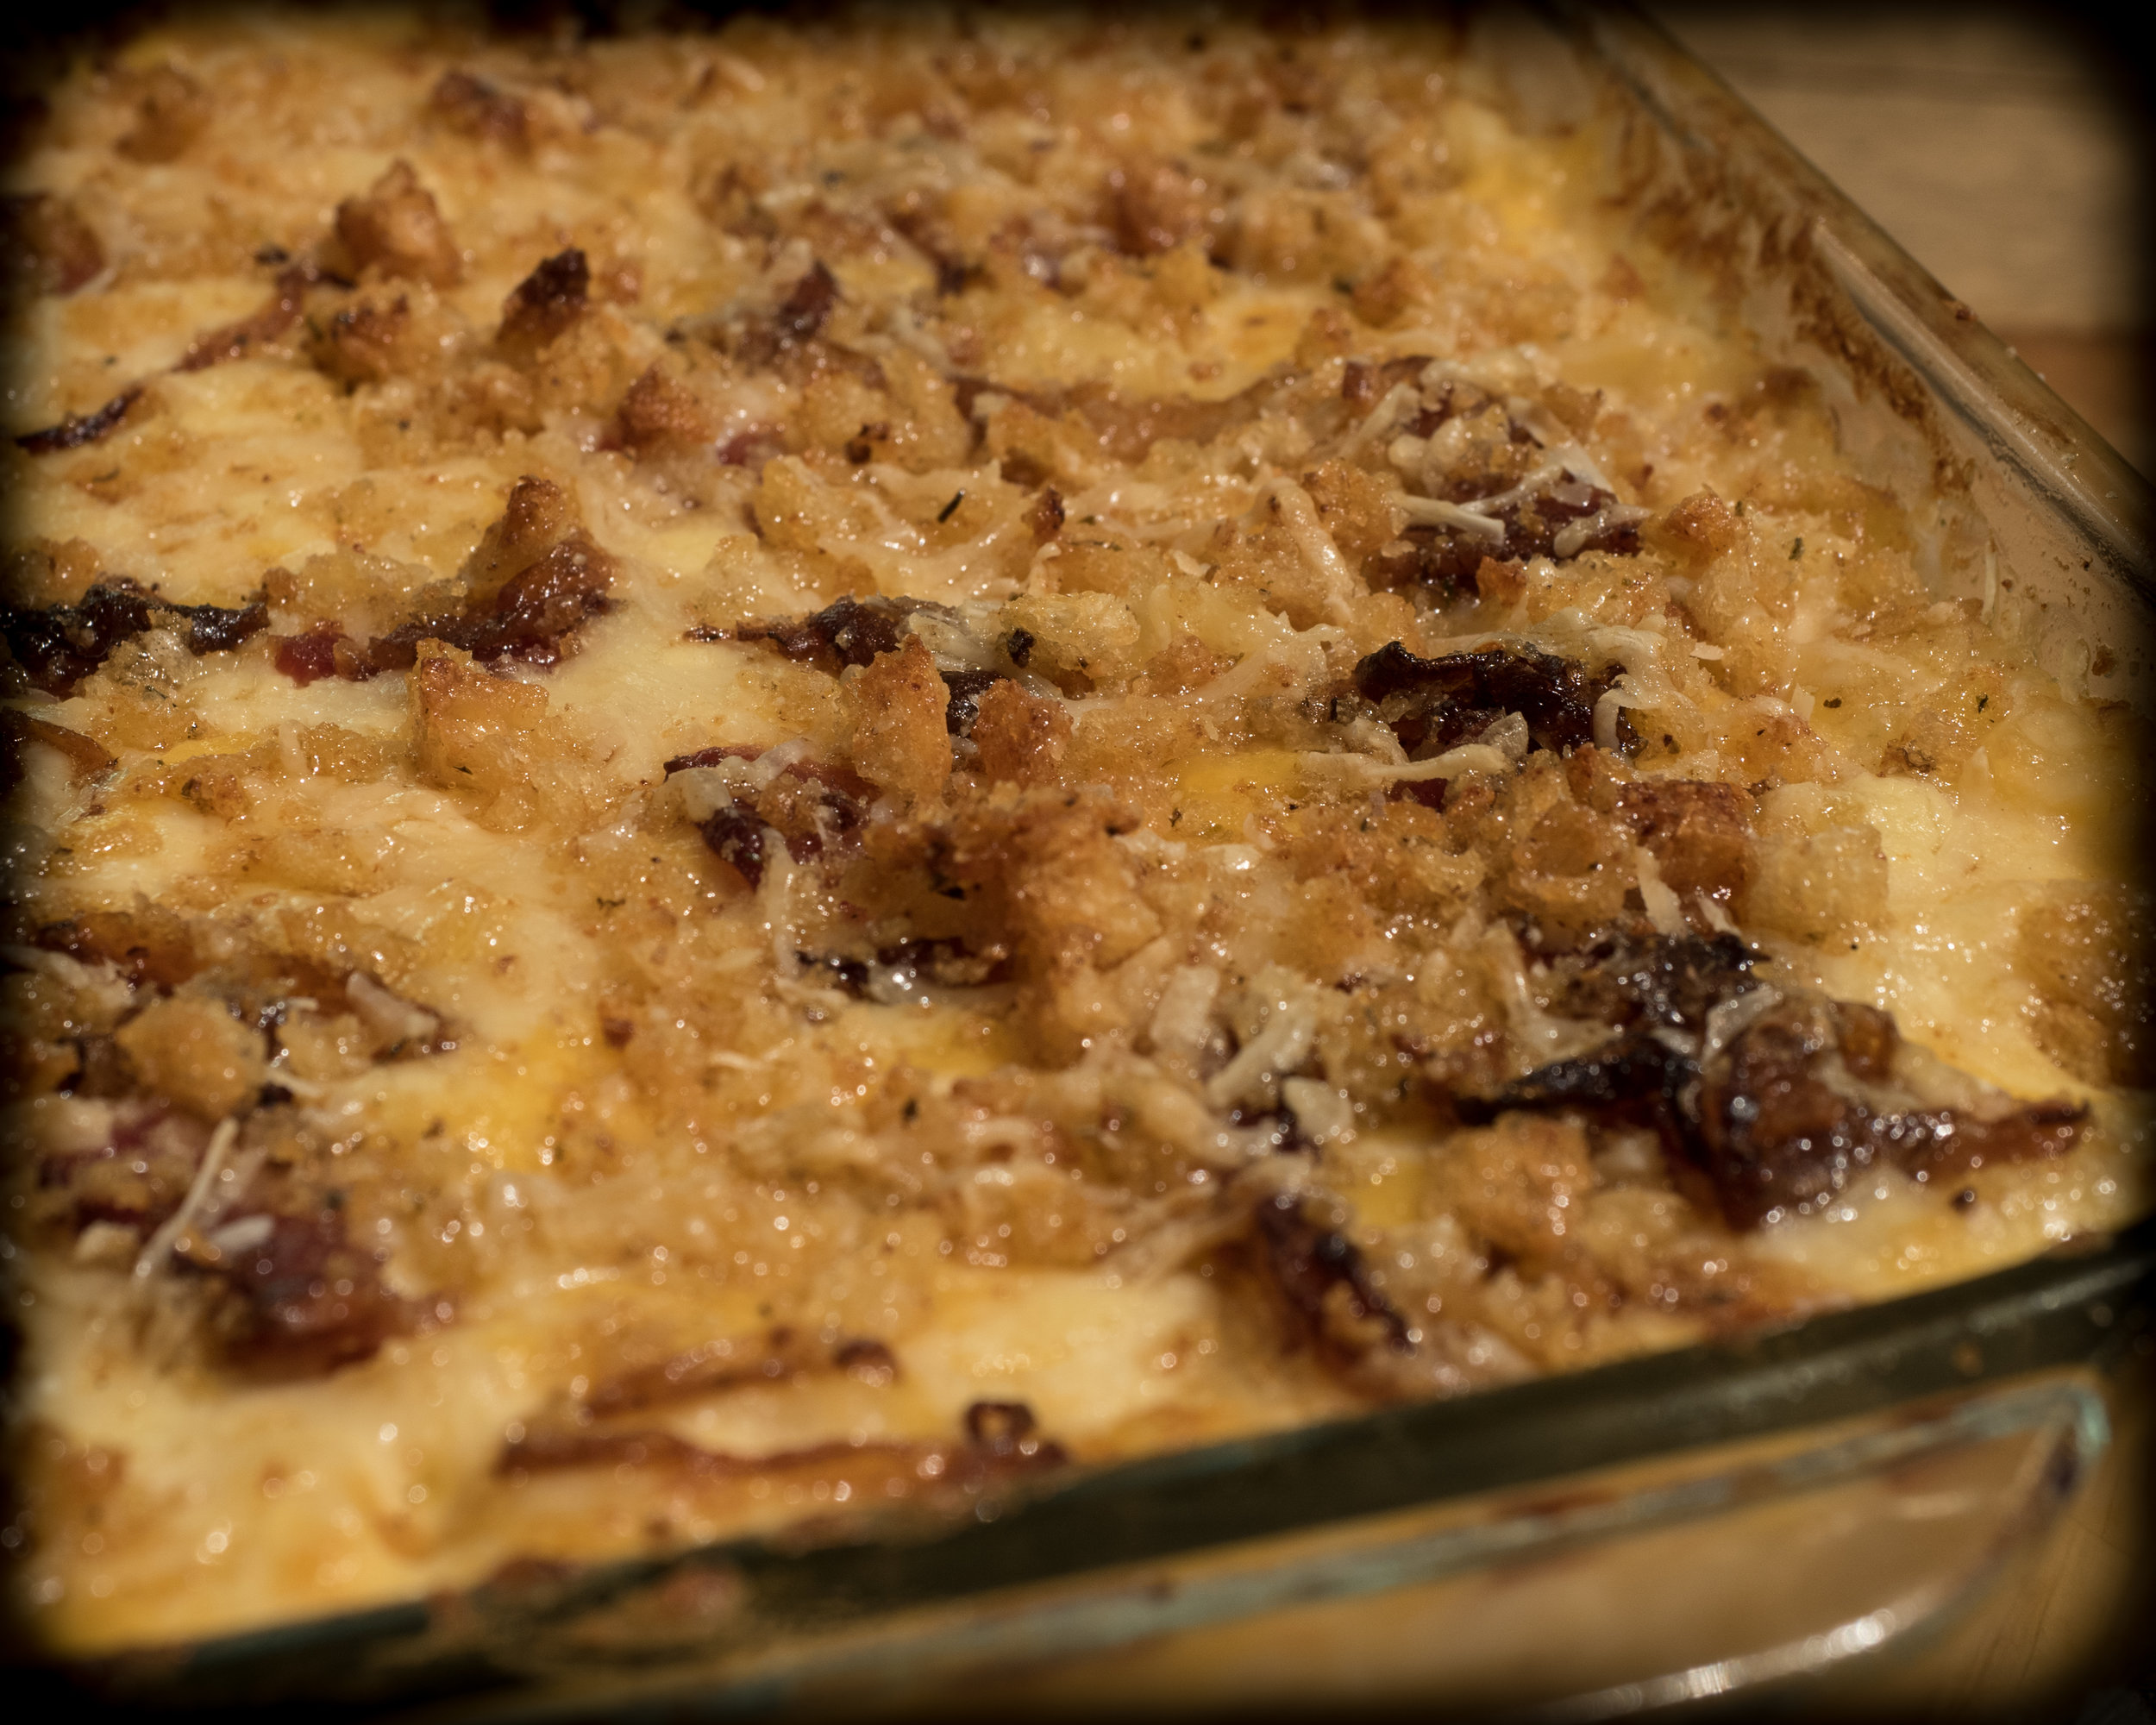 Mac & Cheese with bacon and caramelized onions